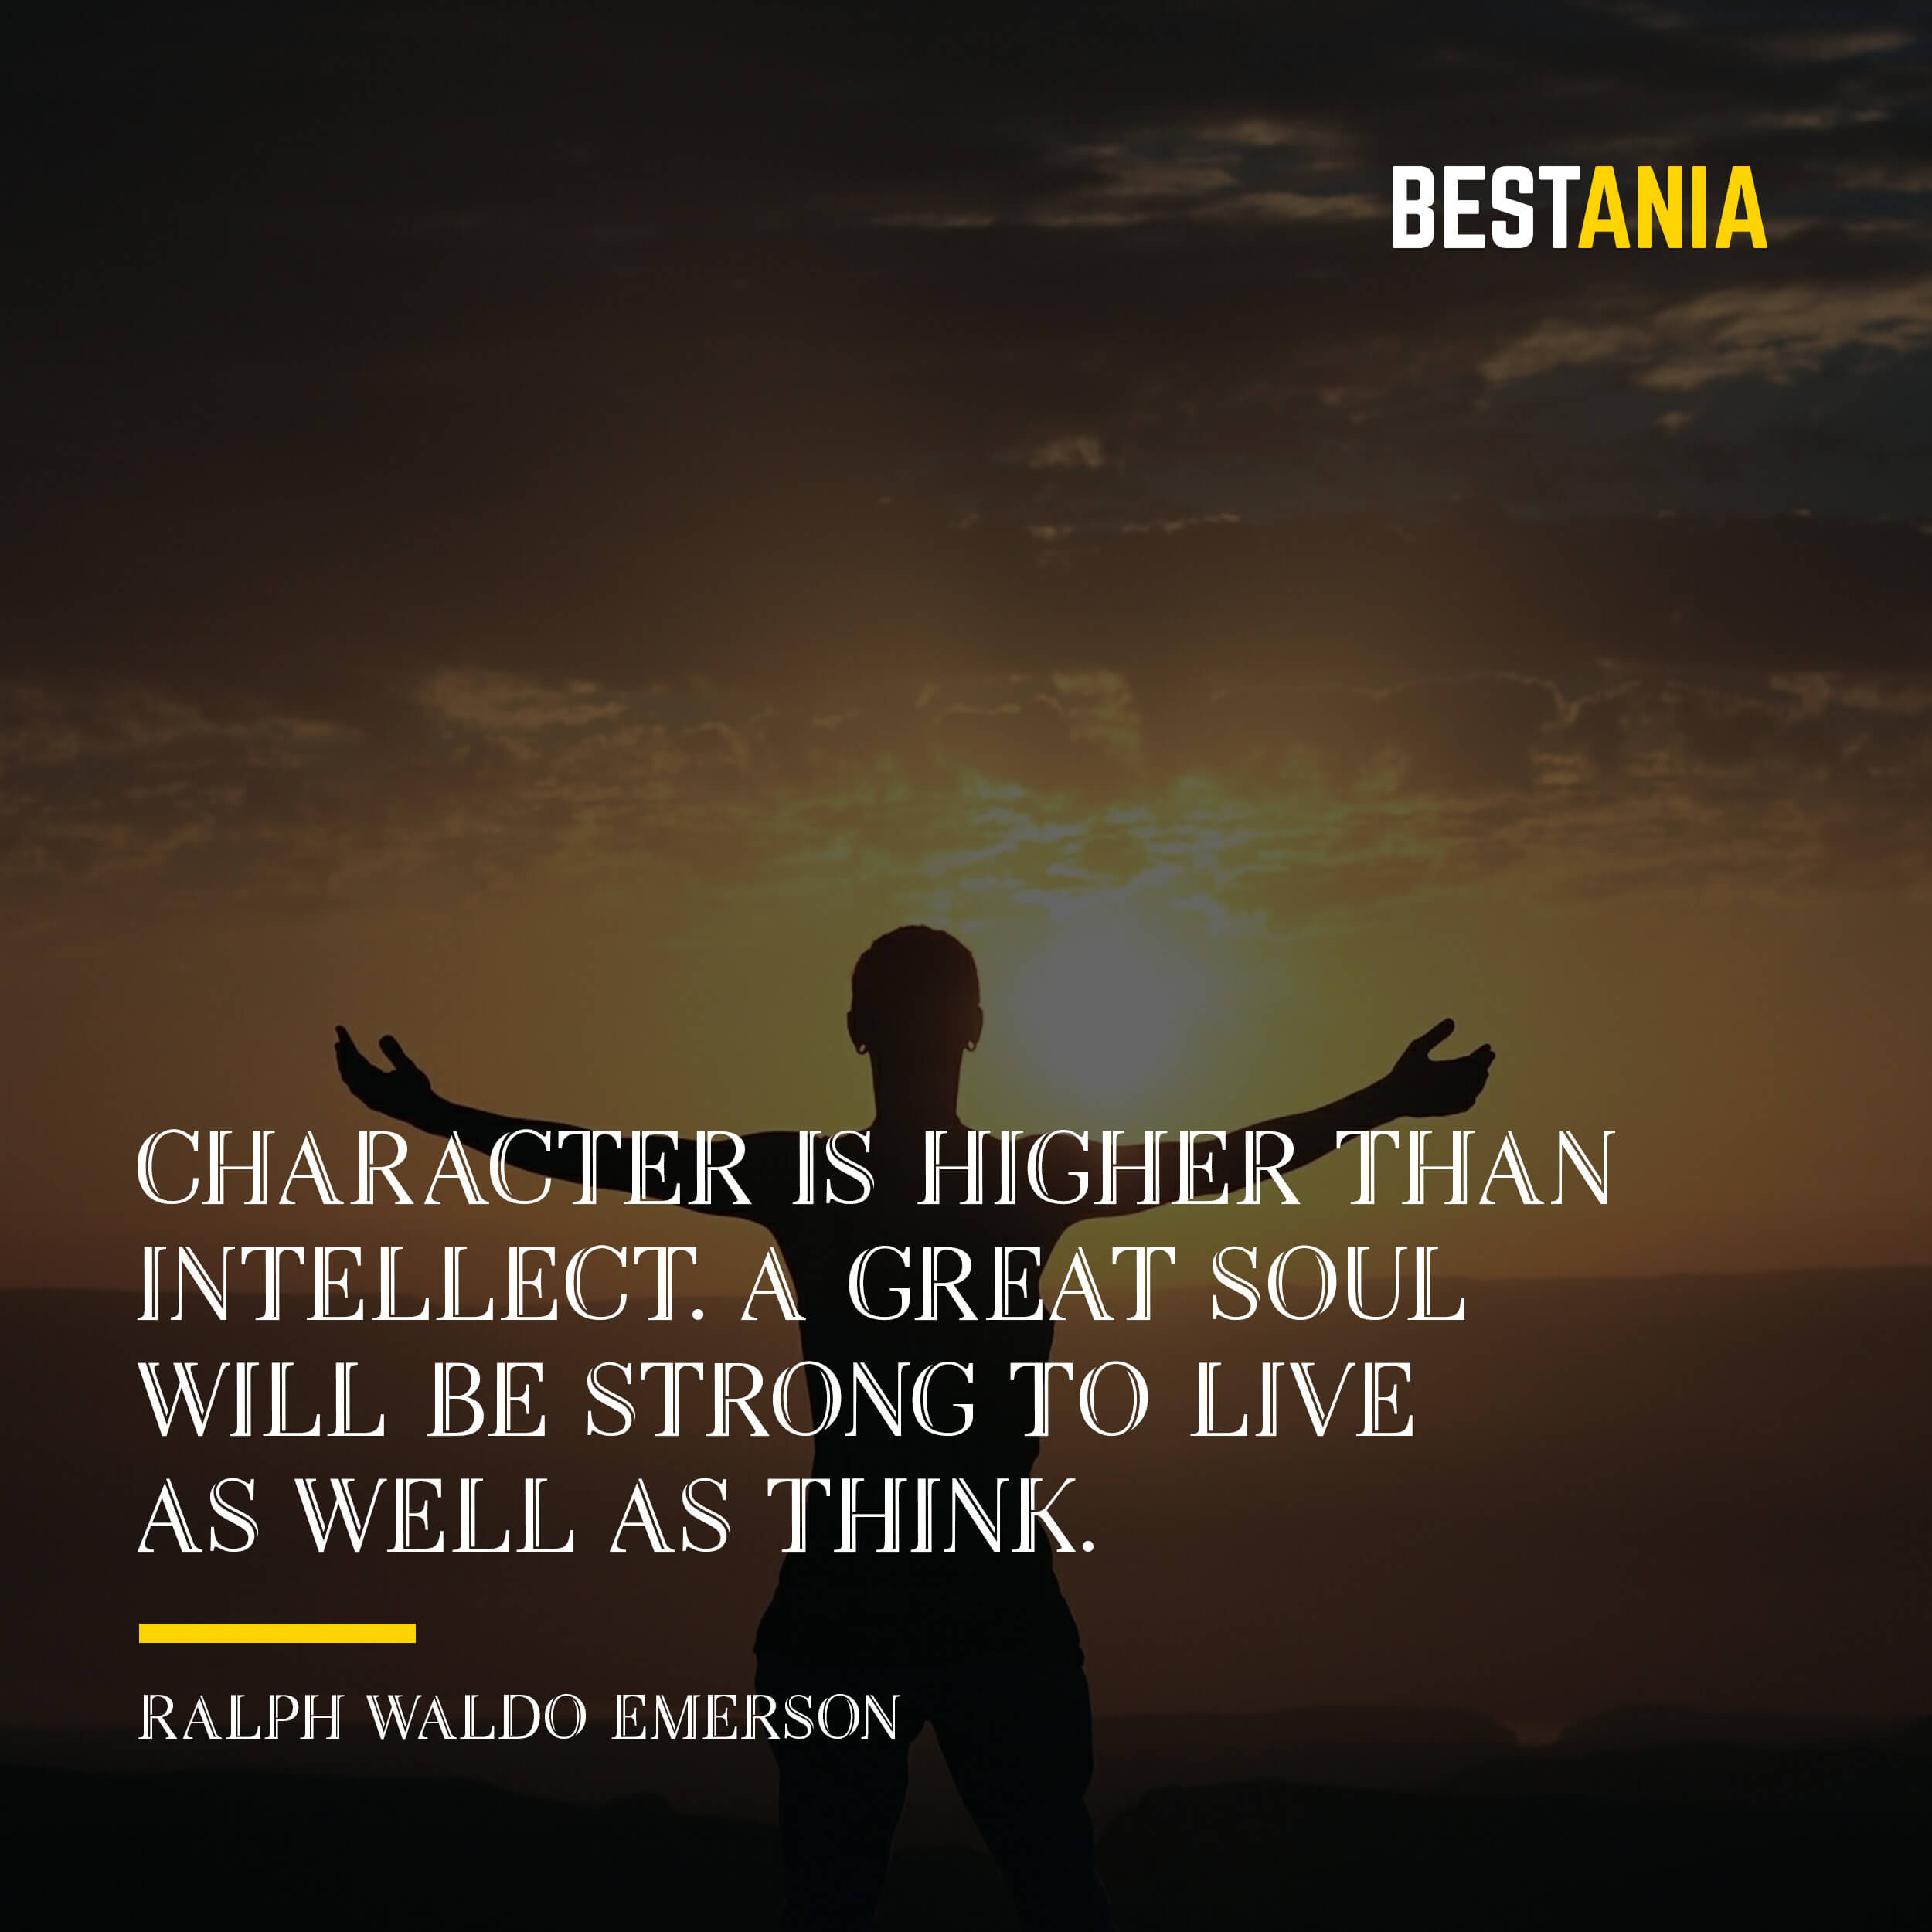 """A CHARACTER IS HIGHER THAN INTELLECT. A GREAT SOUL WILL BE STRONG TO LIVE AS WELL AS THINK."" RALPH WALDO EMERSON"